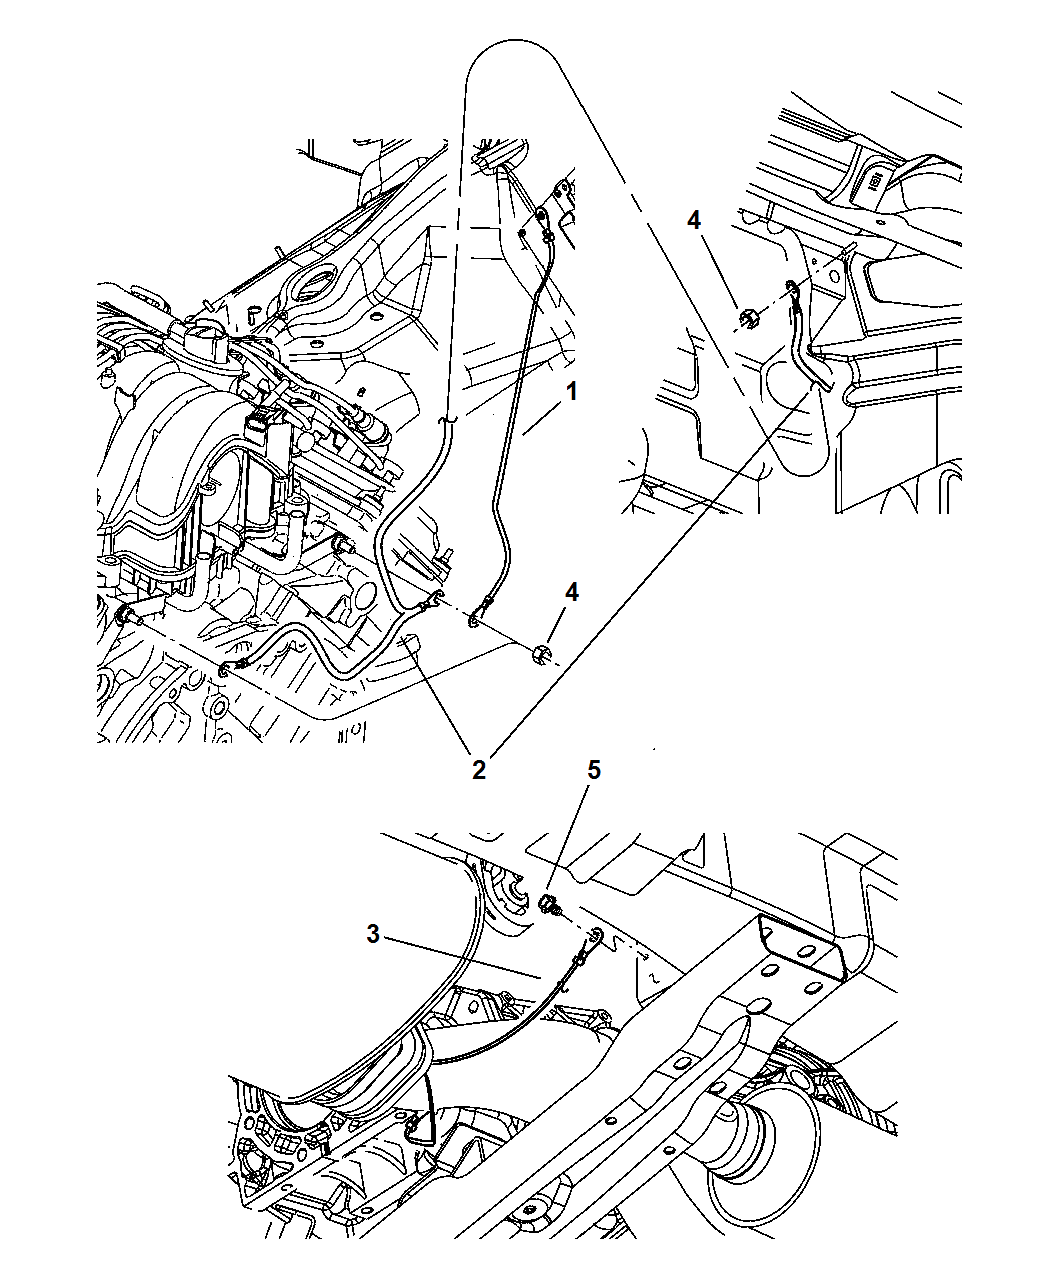 [NRIO_4796]   NC_8751] 2007 Grand Cherokee Engine Diagram | 2006 Jeep Cherokee Engine Diagram |  | Itis Stre Over Marki Xolia Mohammedshrine Librar Wiring 101